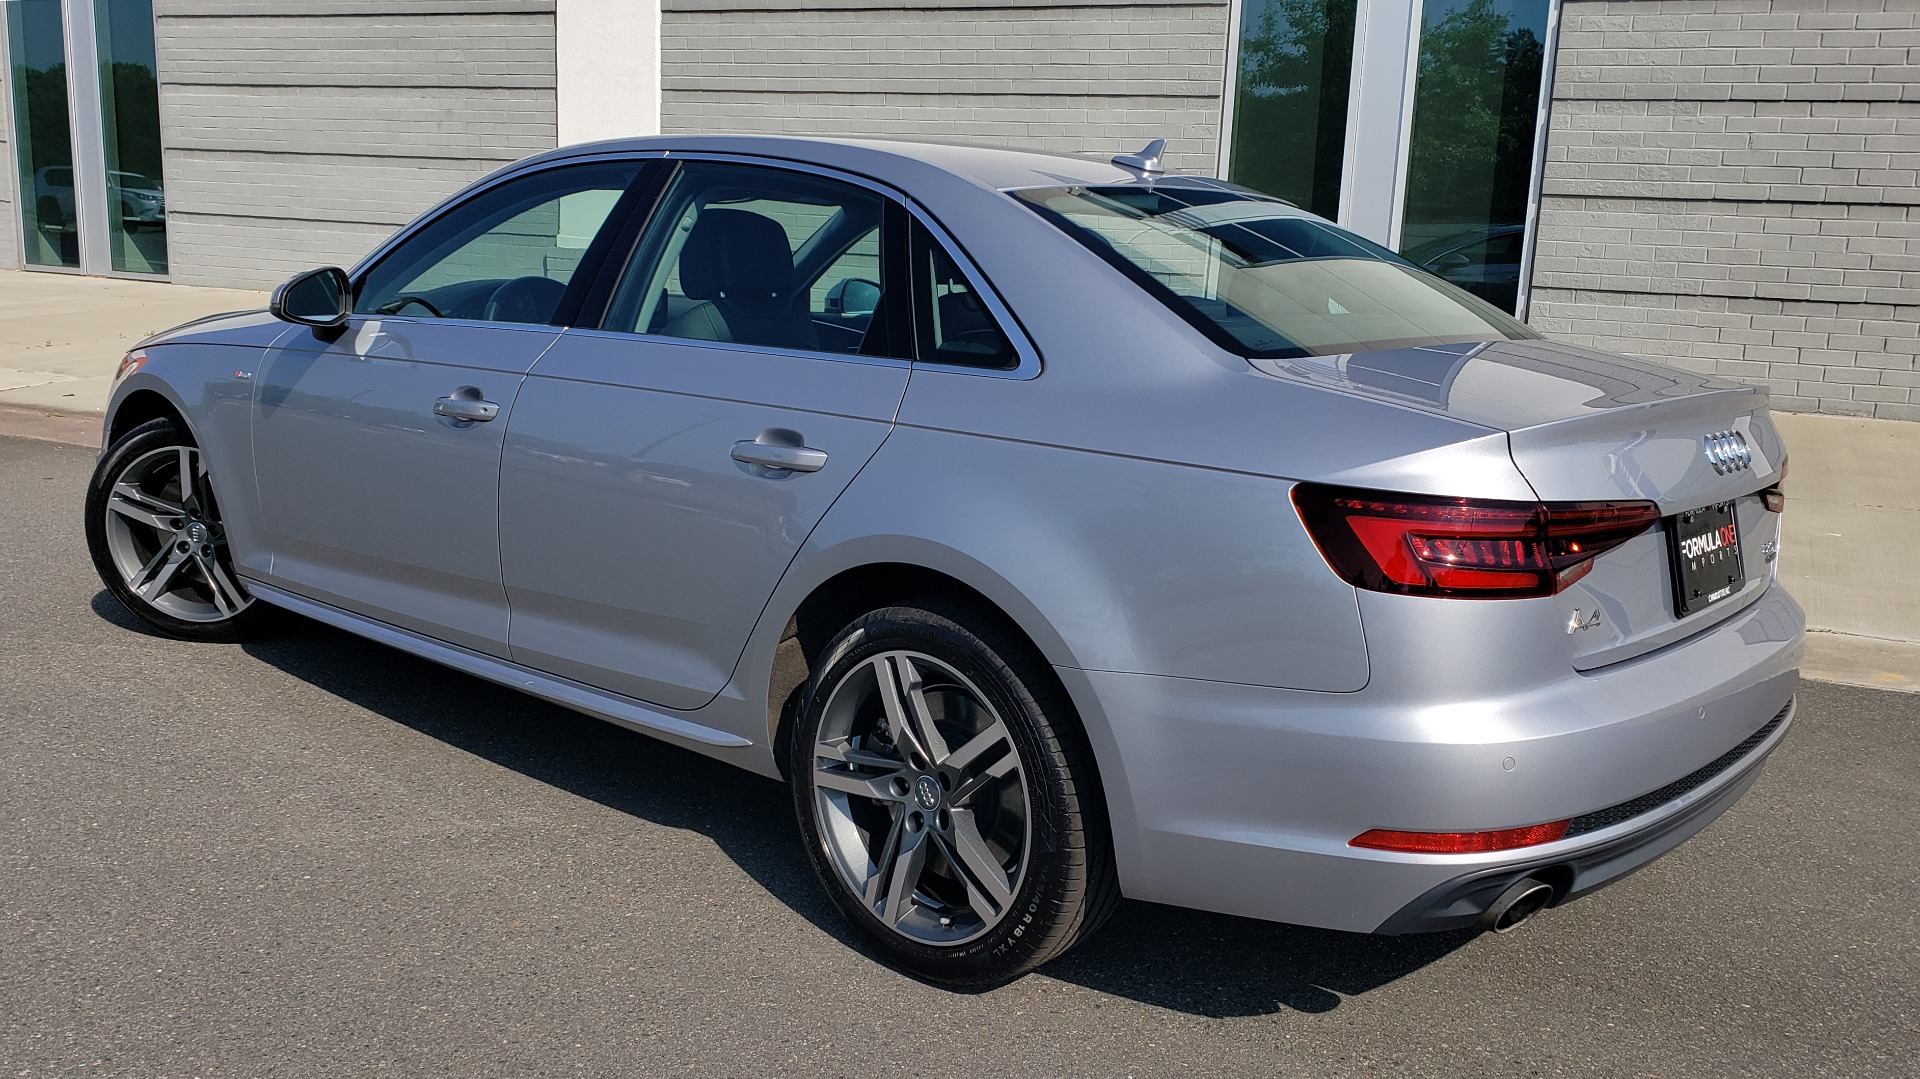 Used 2018 Audi A4 PREMIUM PLUS 2.0T / NAV / SUNROOF / B&O SND / CLD WTHR / REARVIEW for sale $29,395 at Formula Imports in Charlotte NC 28227 2